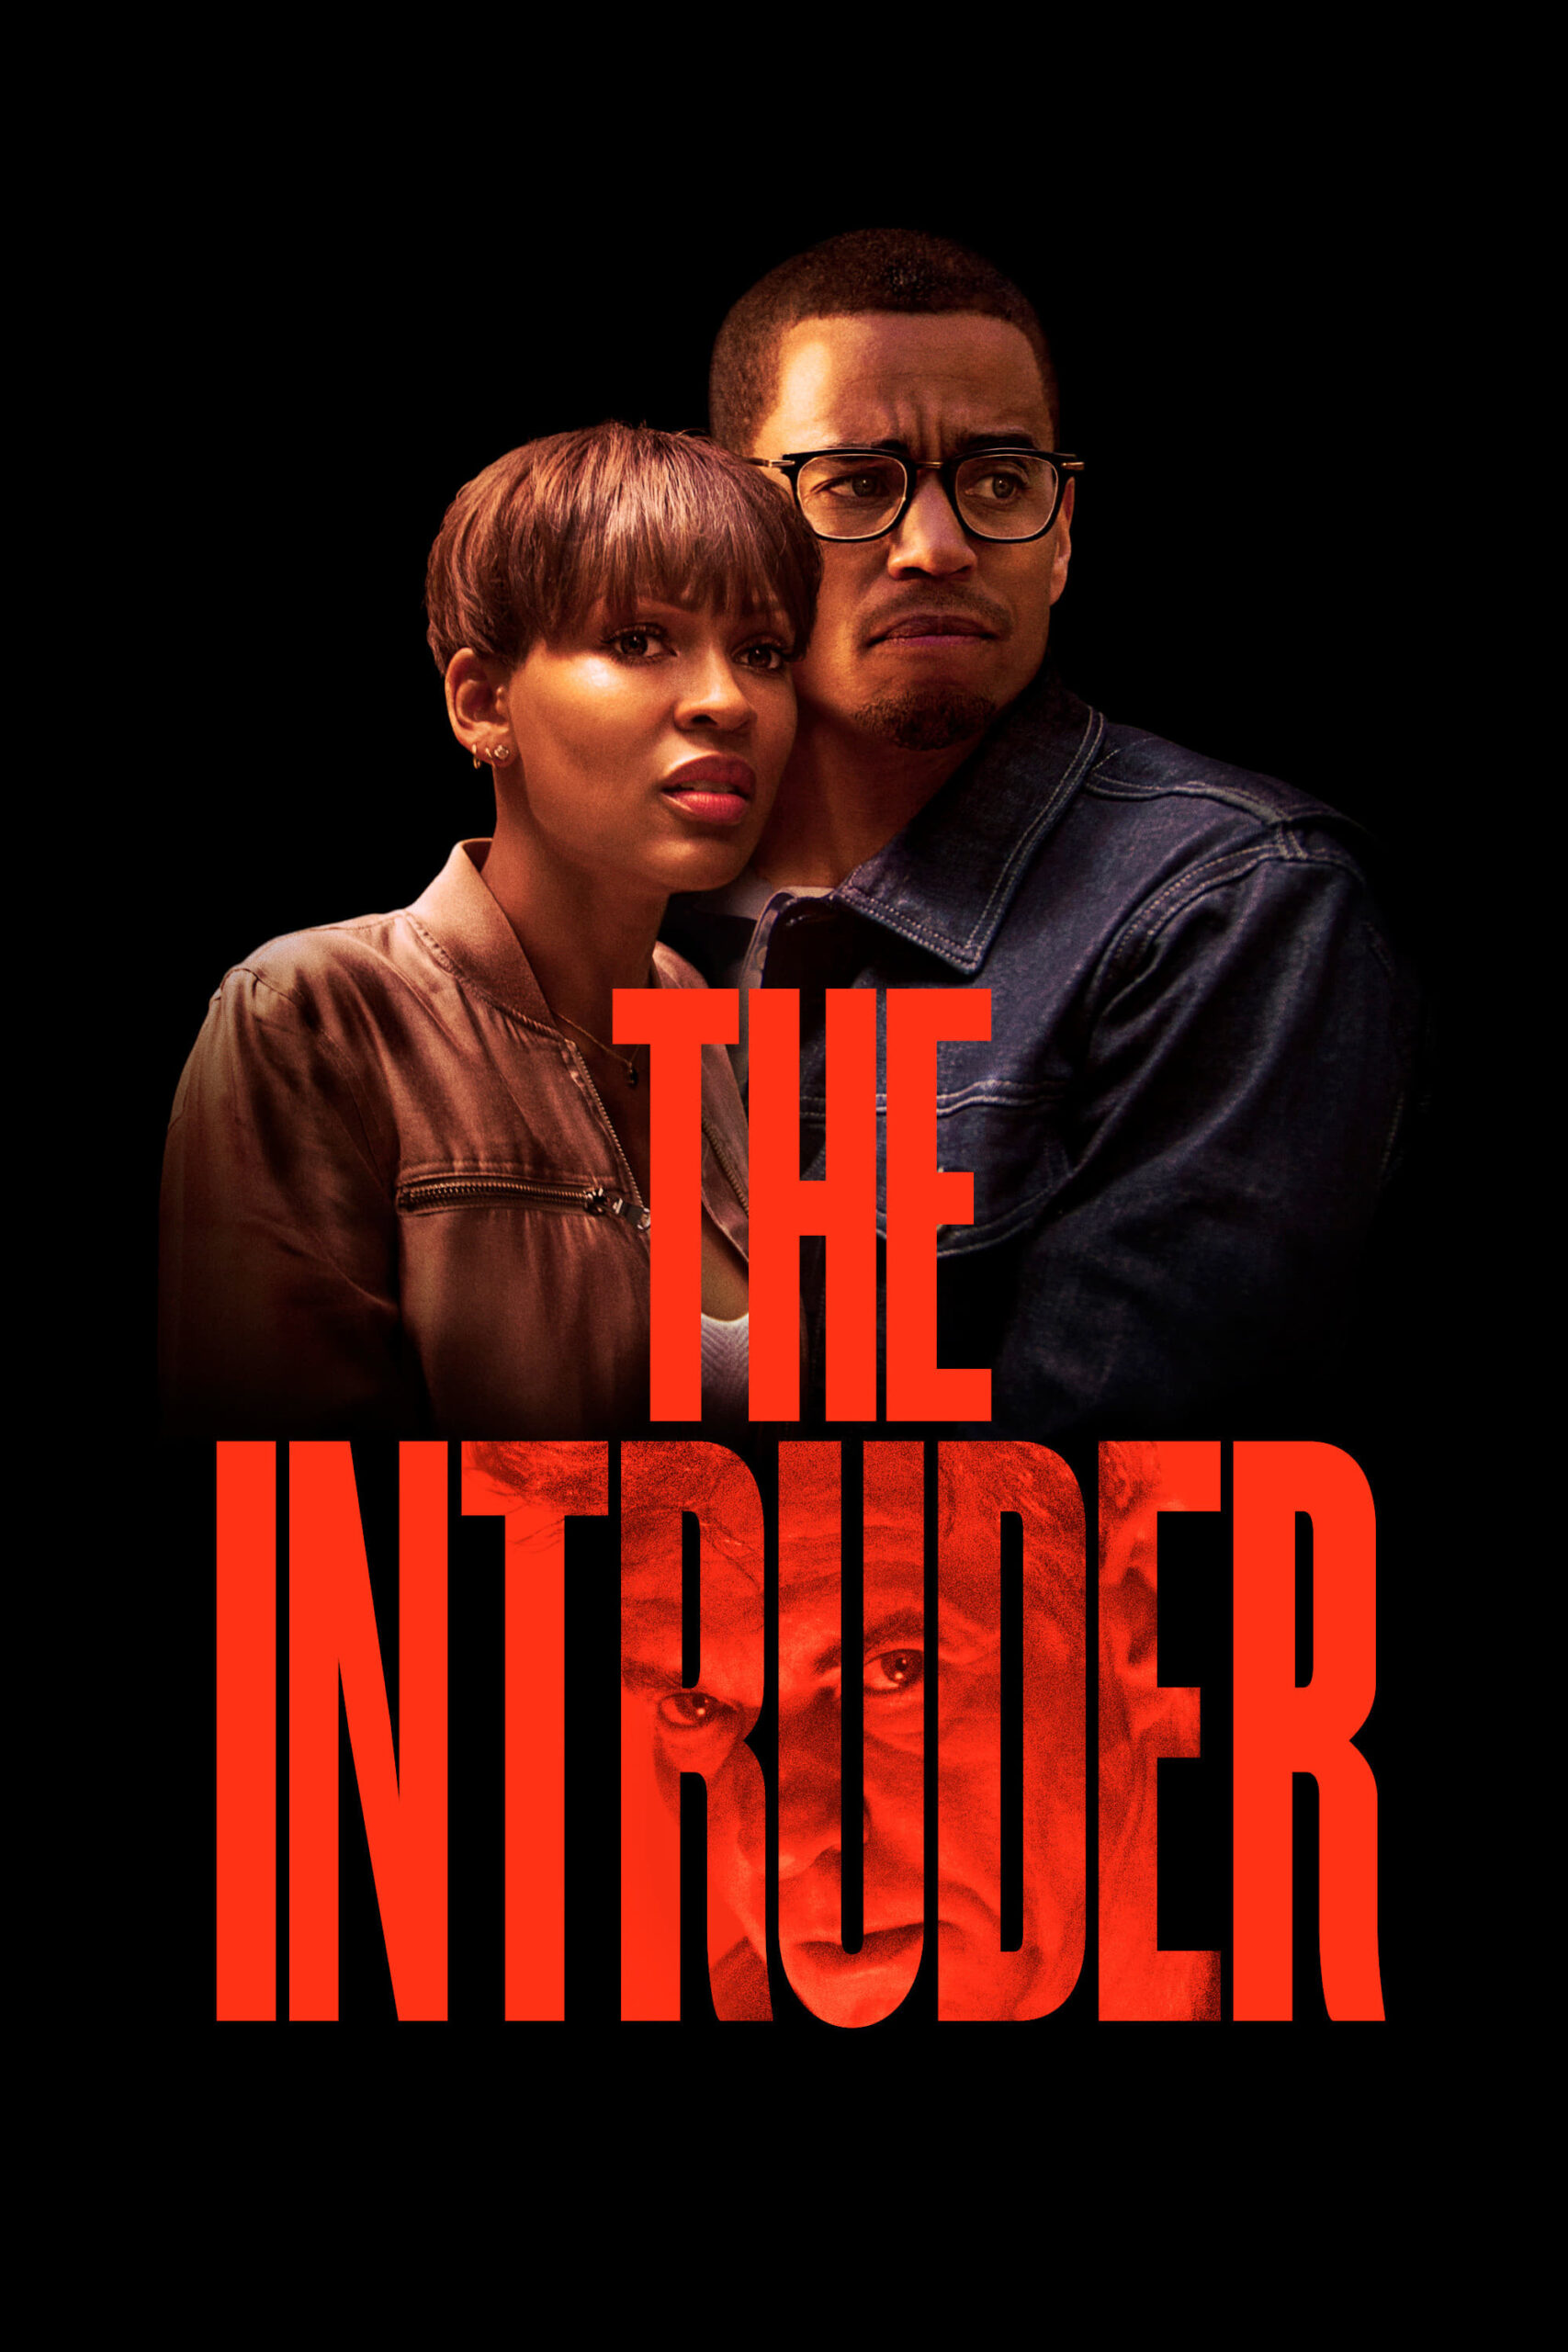 The Intruder Movie Streaming Online Watch on Disney Plus Hotstar, Google Play, Youtube